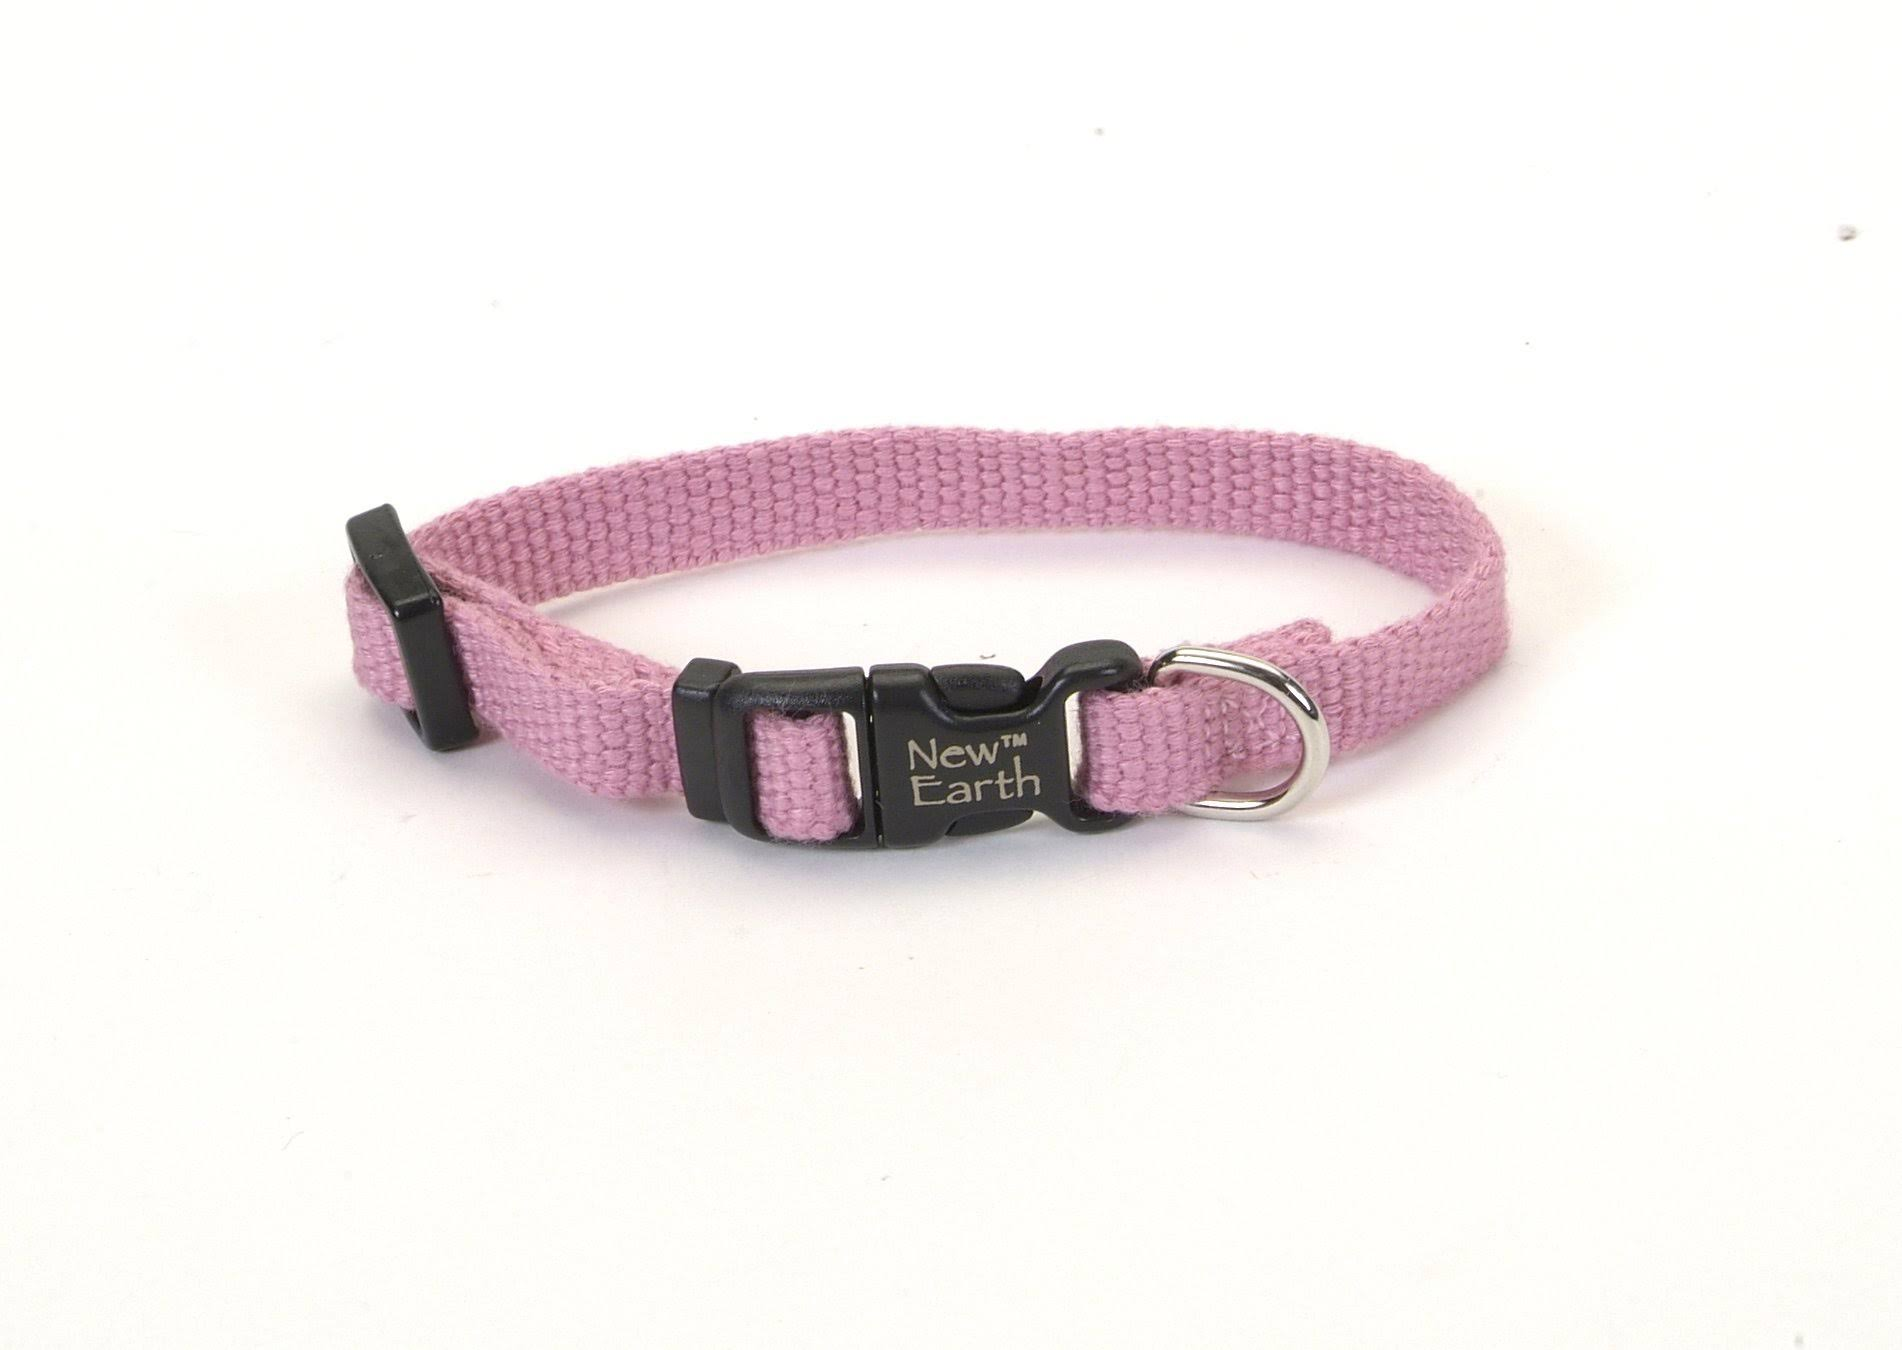 Earth Natural Soy Fiber Soft Comfortable Dog Collar Adjustable - Pink, X-Small